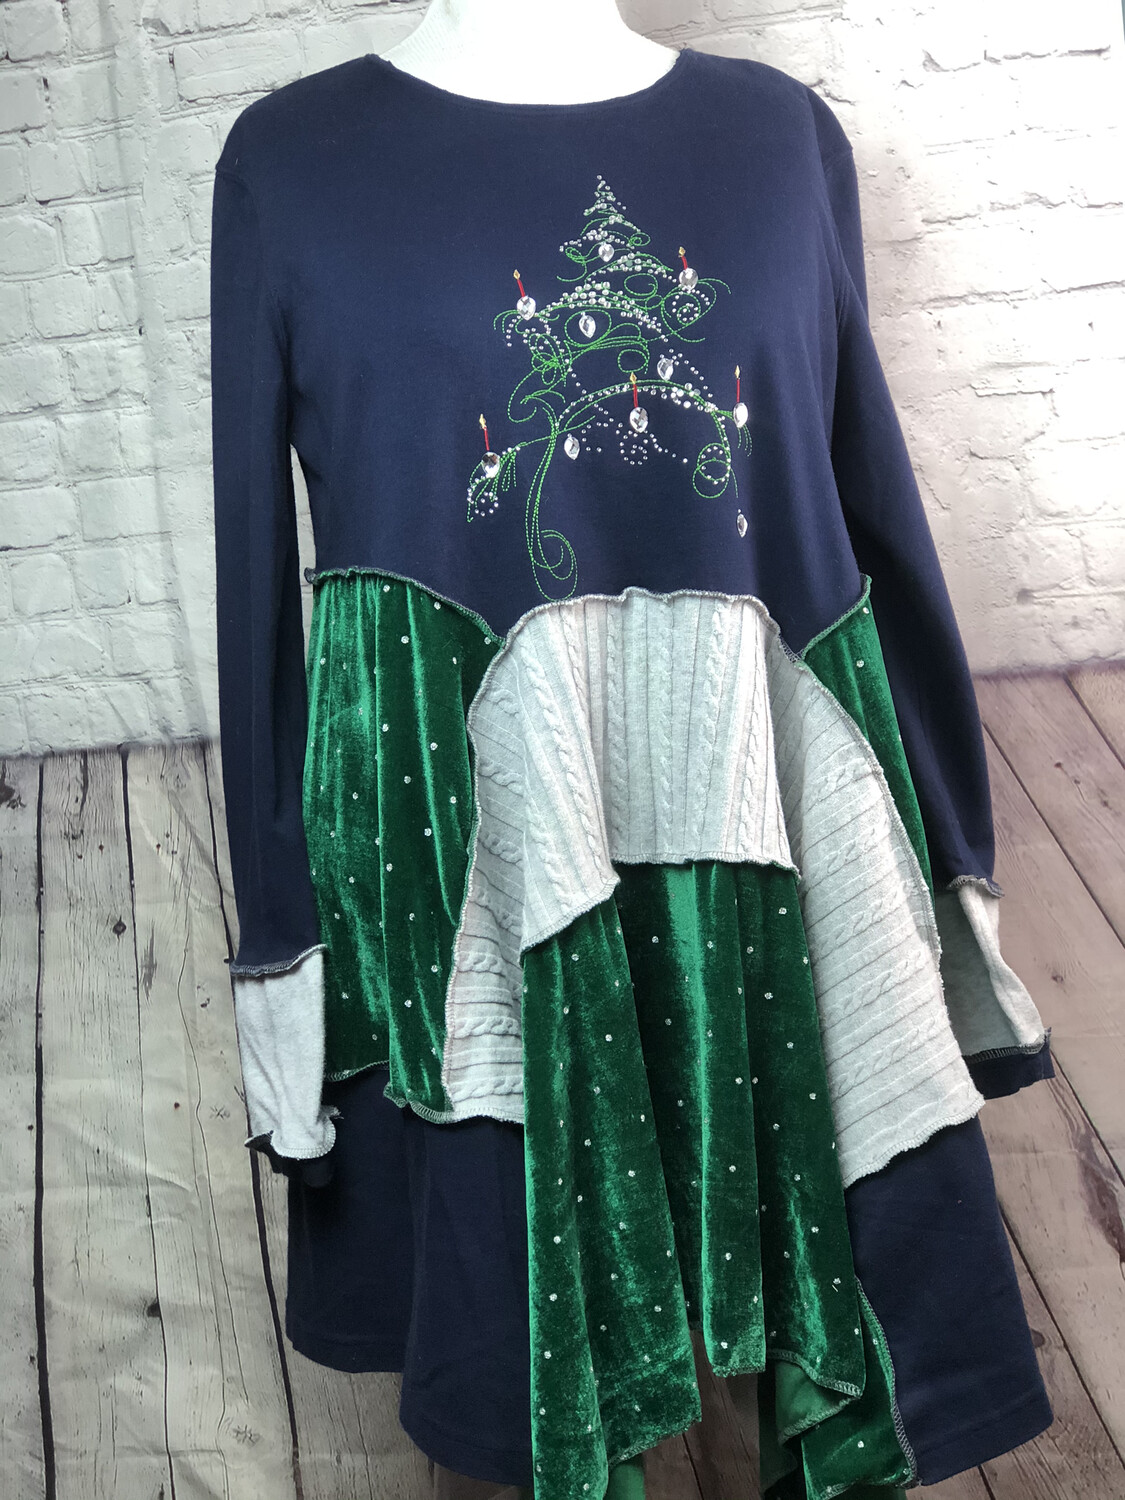 Christmas Sustainable Fashion S Threads Recreated Recycled Holiday Tree Silver Velvet Aline Lagenlook Flare Sweatshirt Size XL 2X 3X